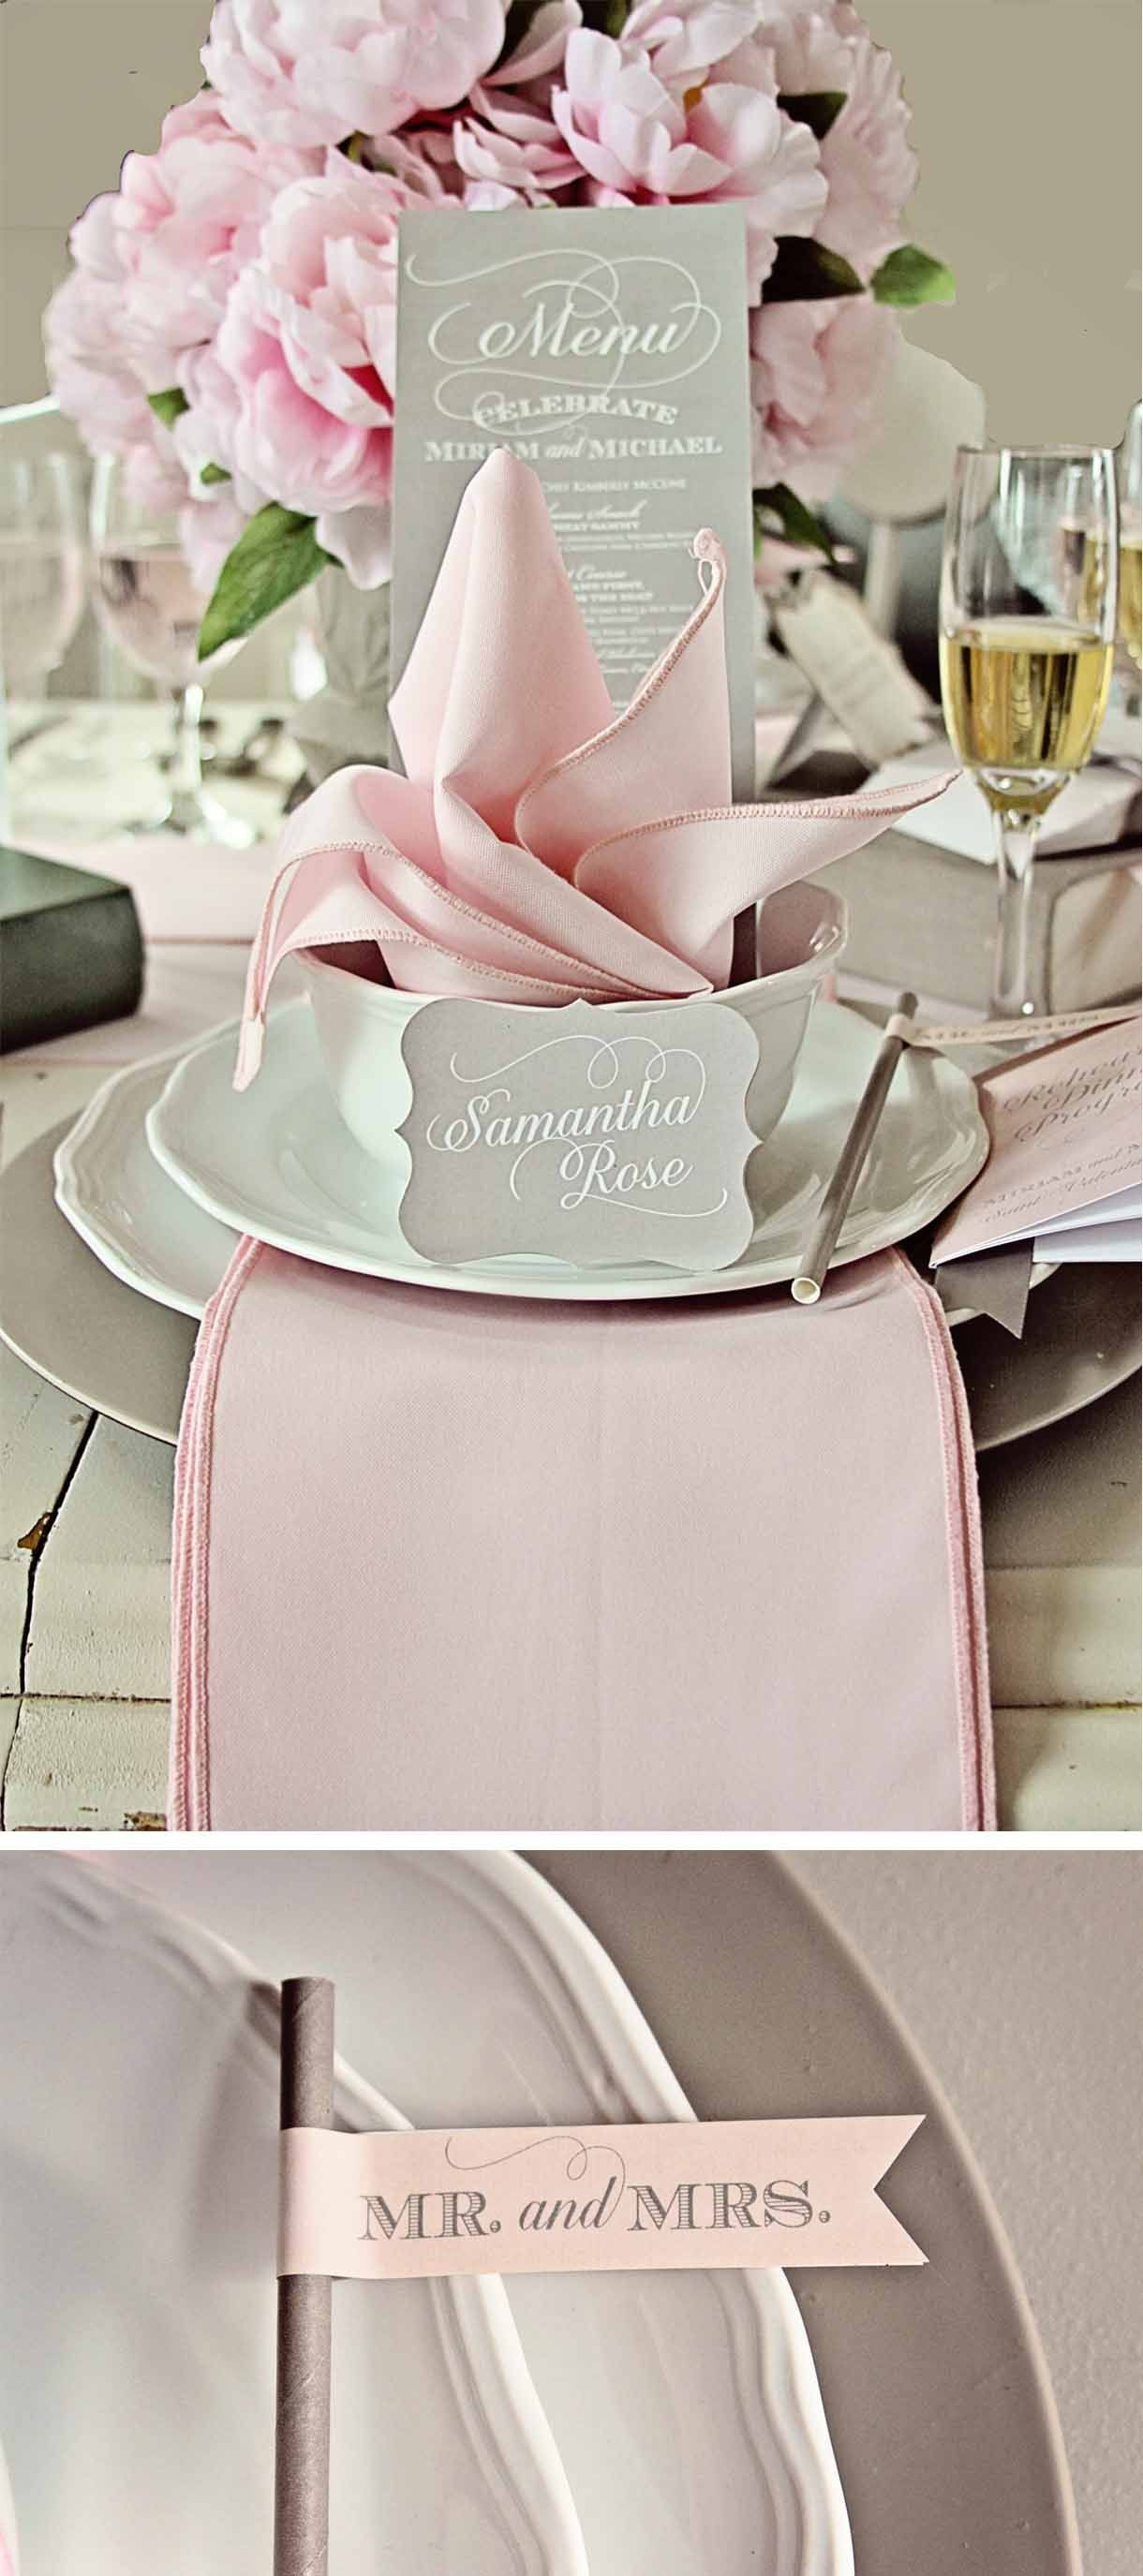 Table Setting Light Pink And Grey Napkins Charger Plates Pinterest Gray Weddings Wedding